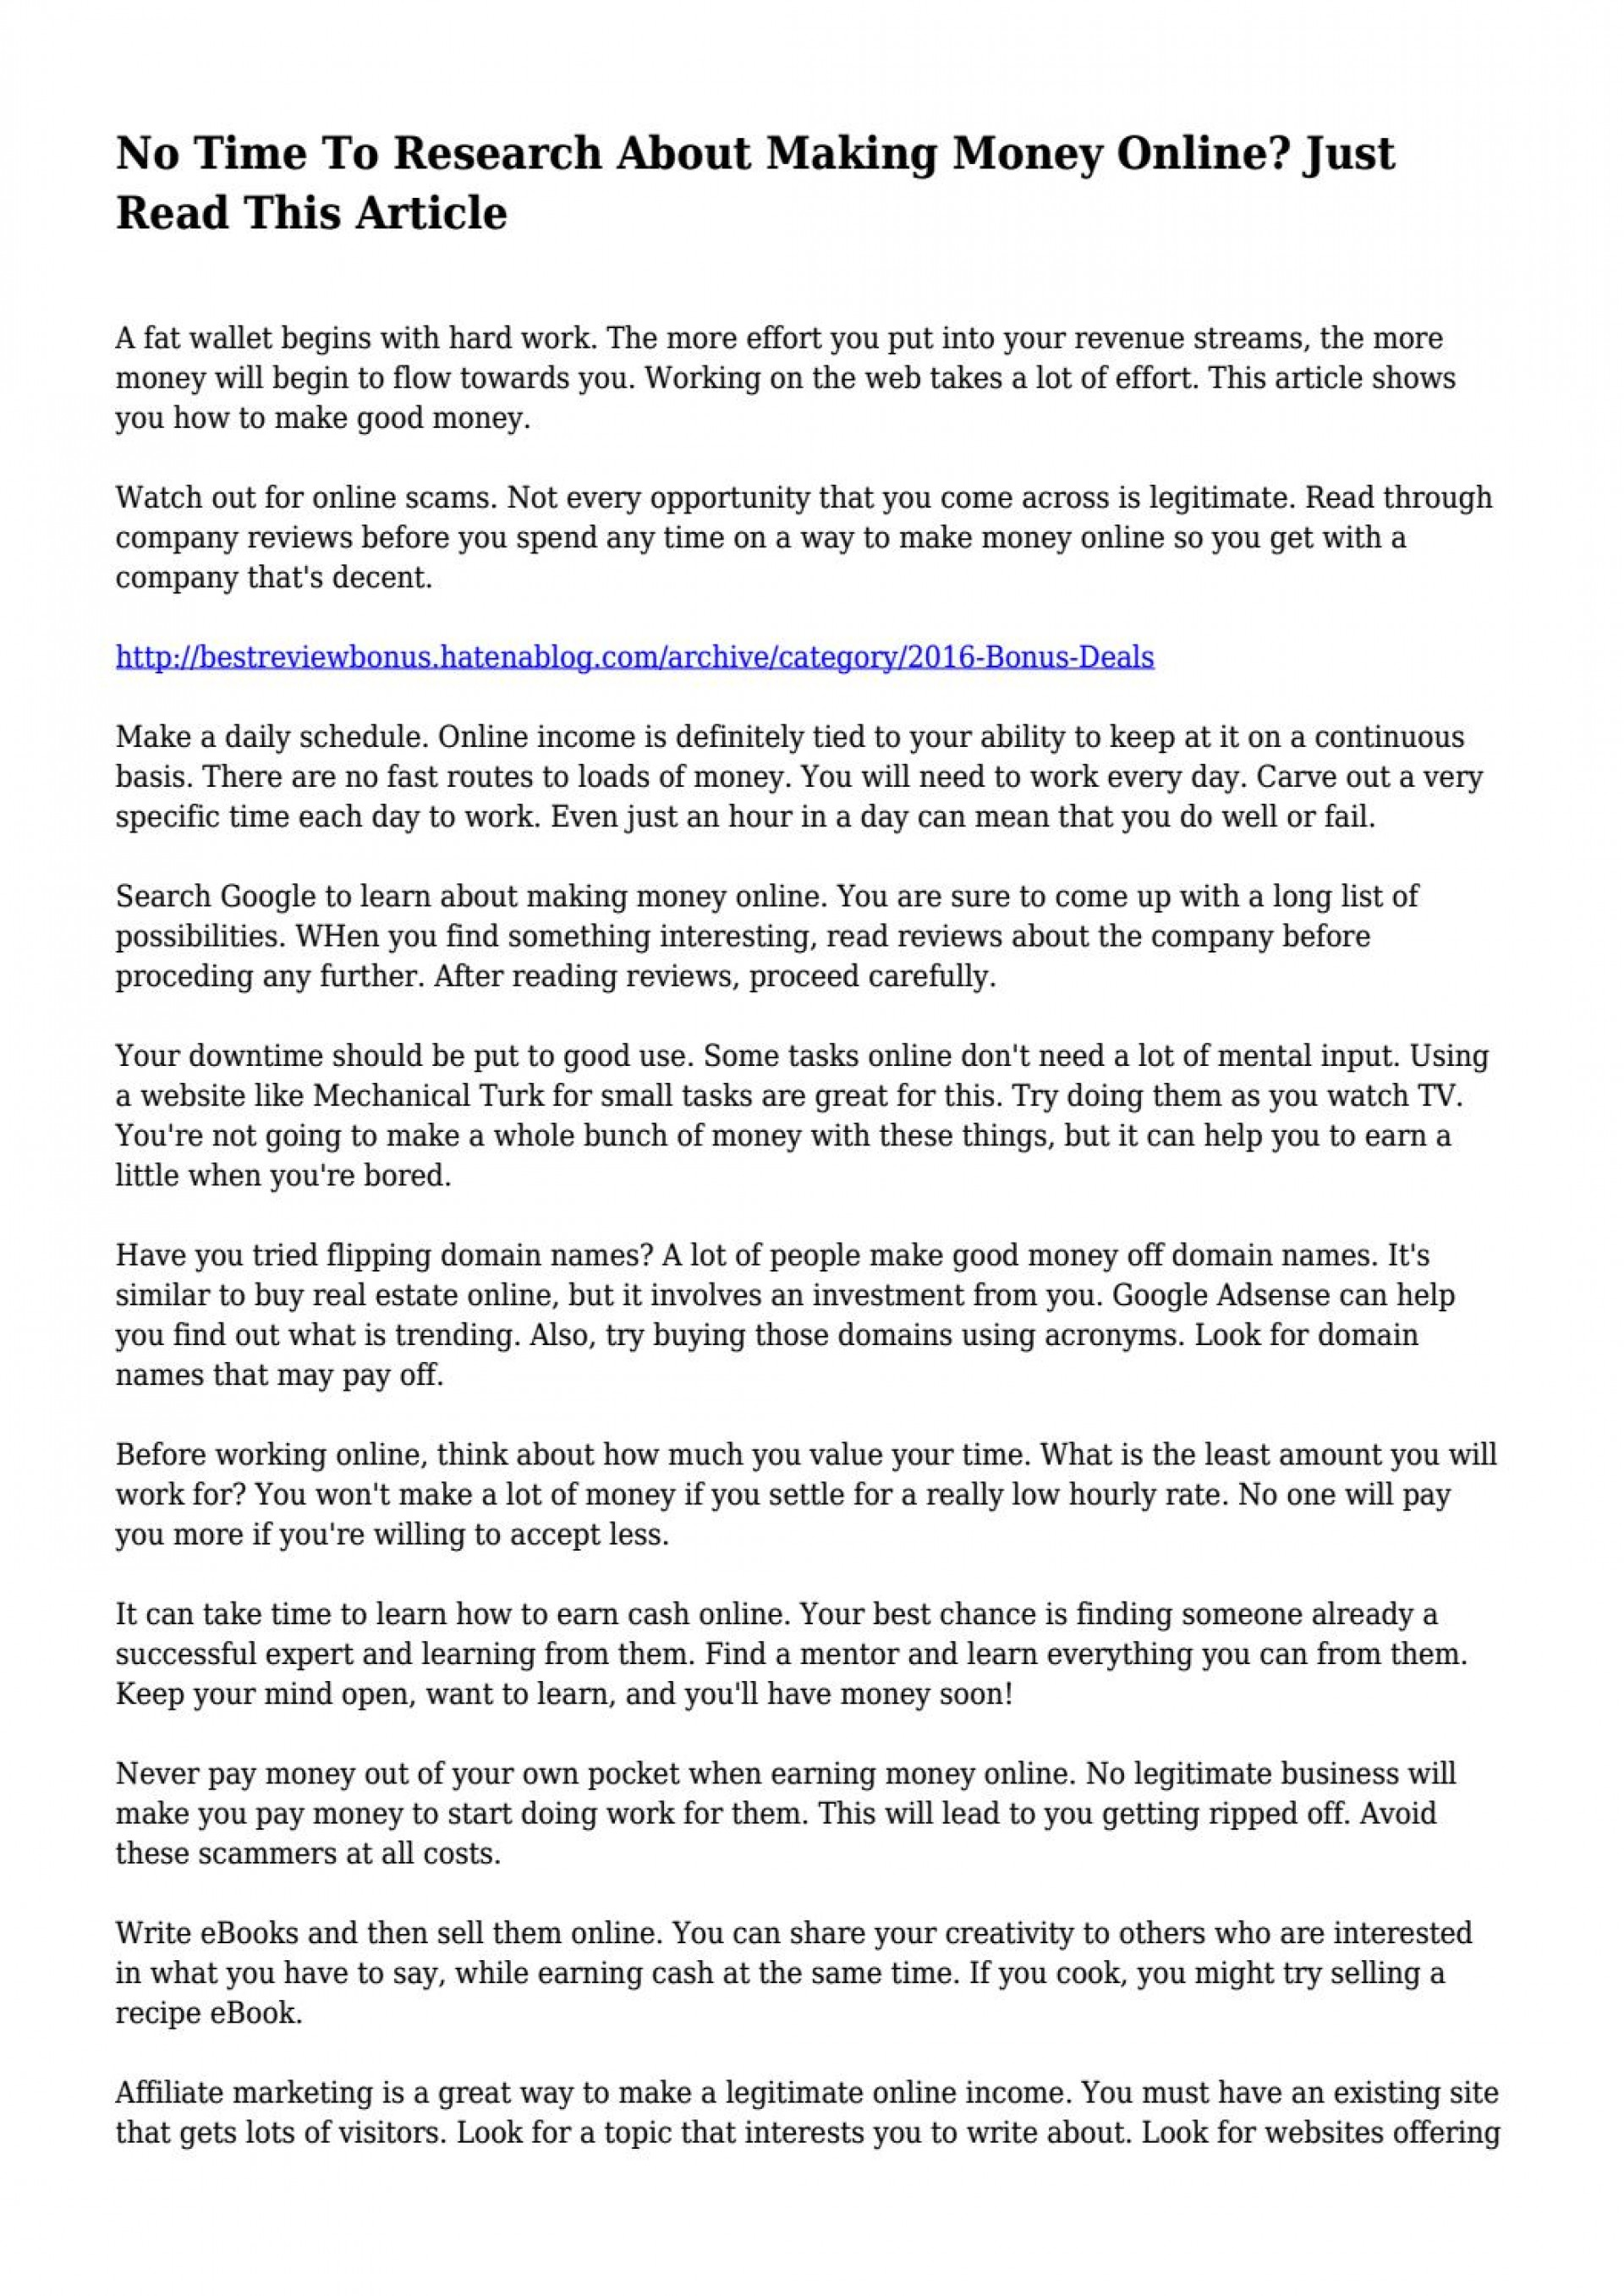 019 Best Website To Read Research Papers Paper Page 1 Outstanding 1920